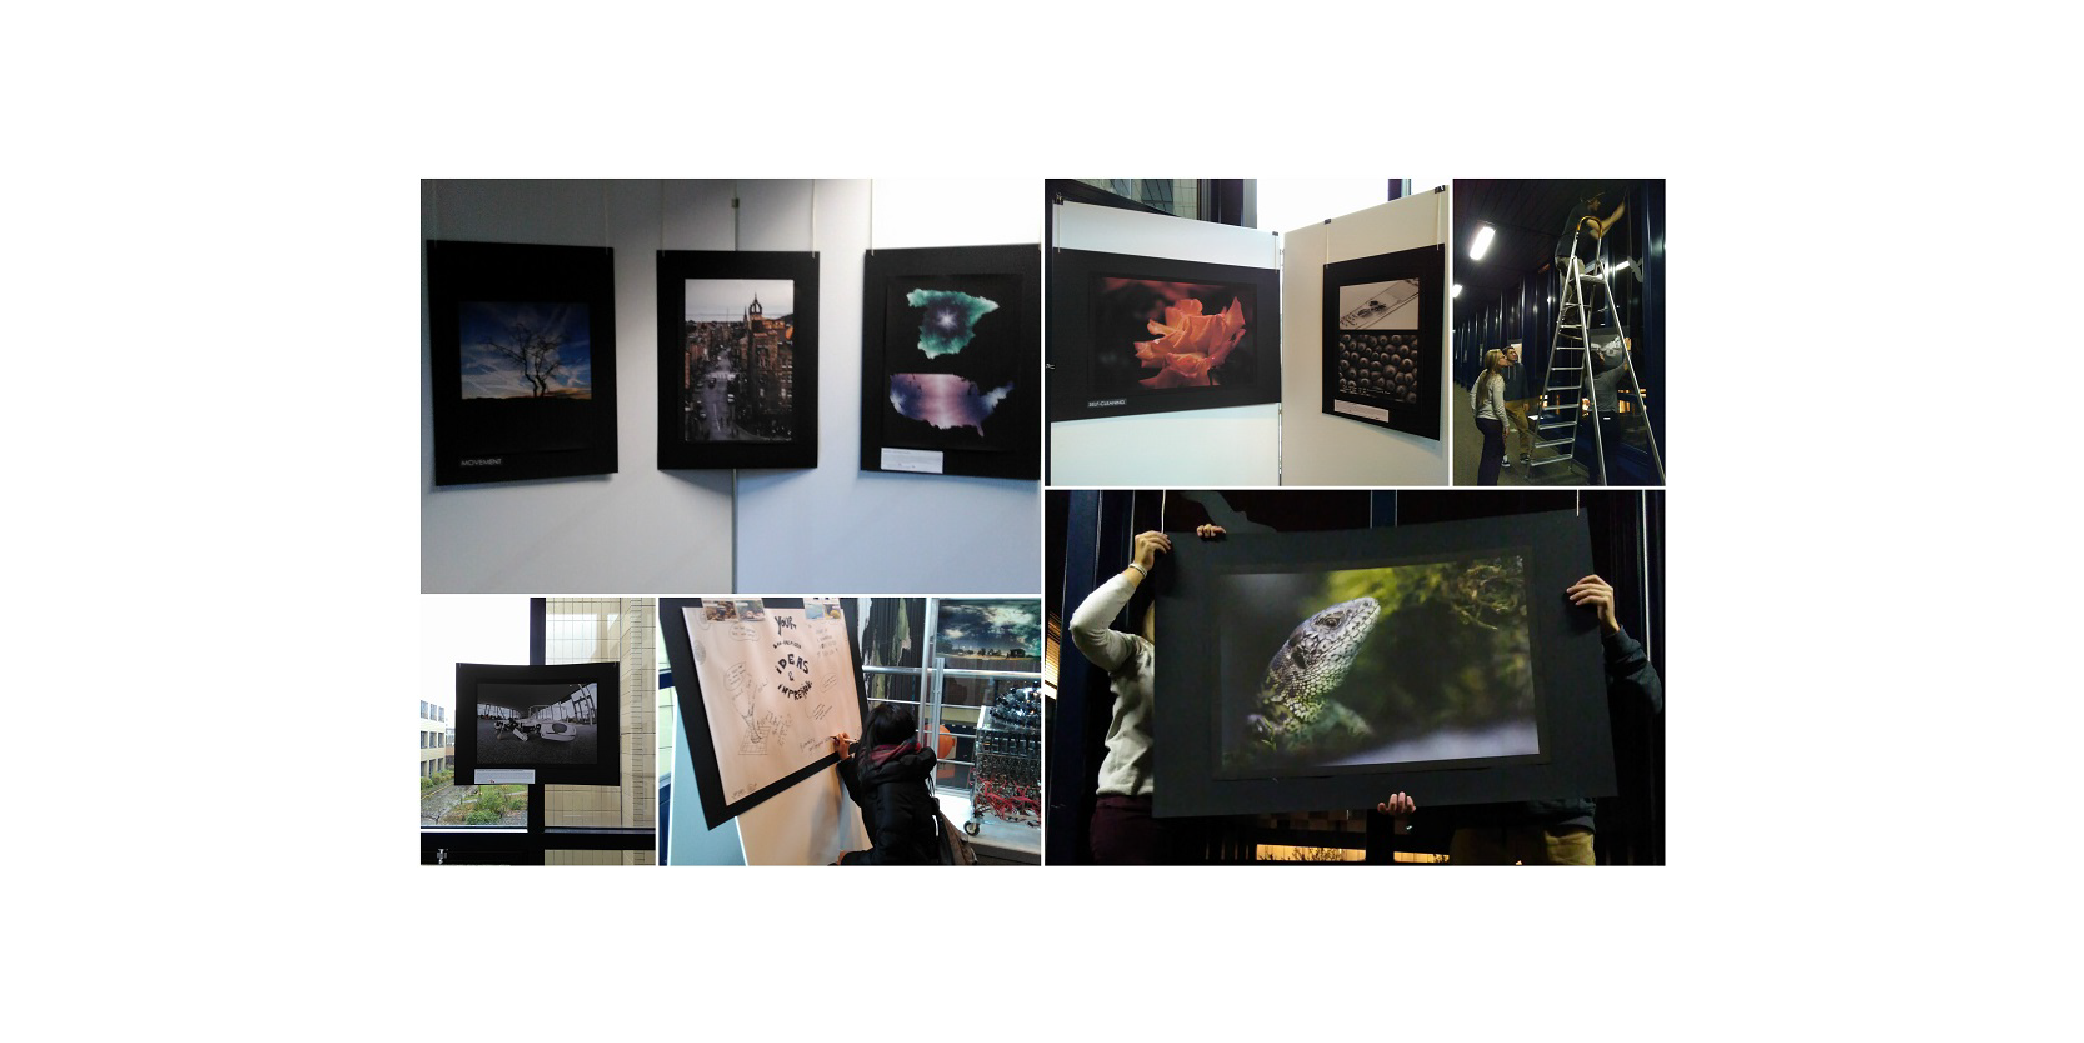 BIOINSPIRED TECHNOLOGY PHOTO EXHIBITION